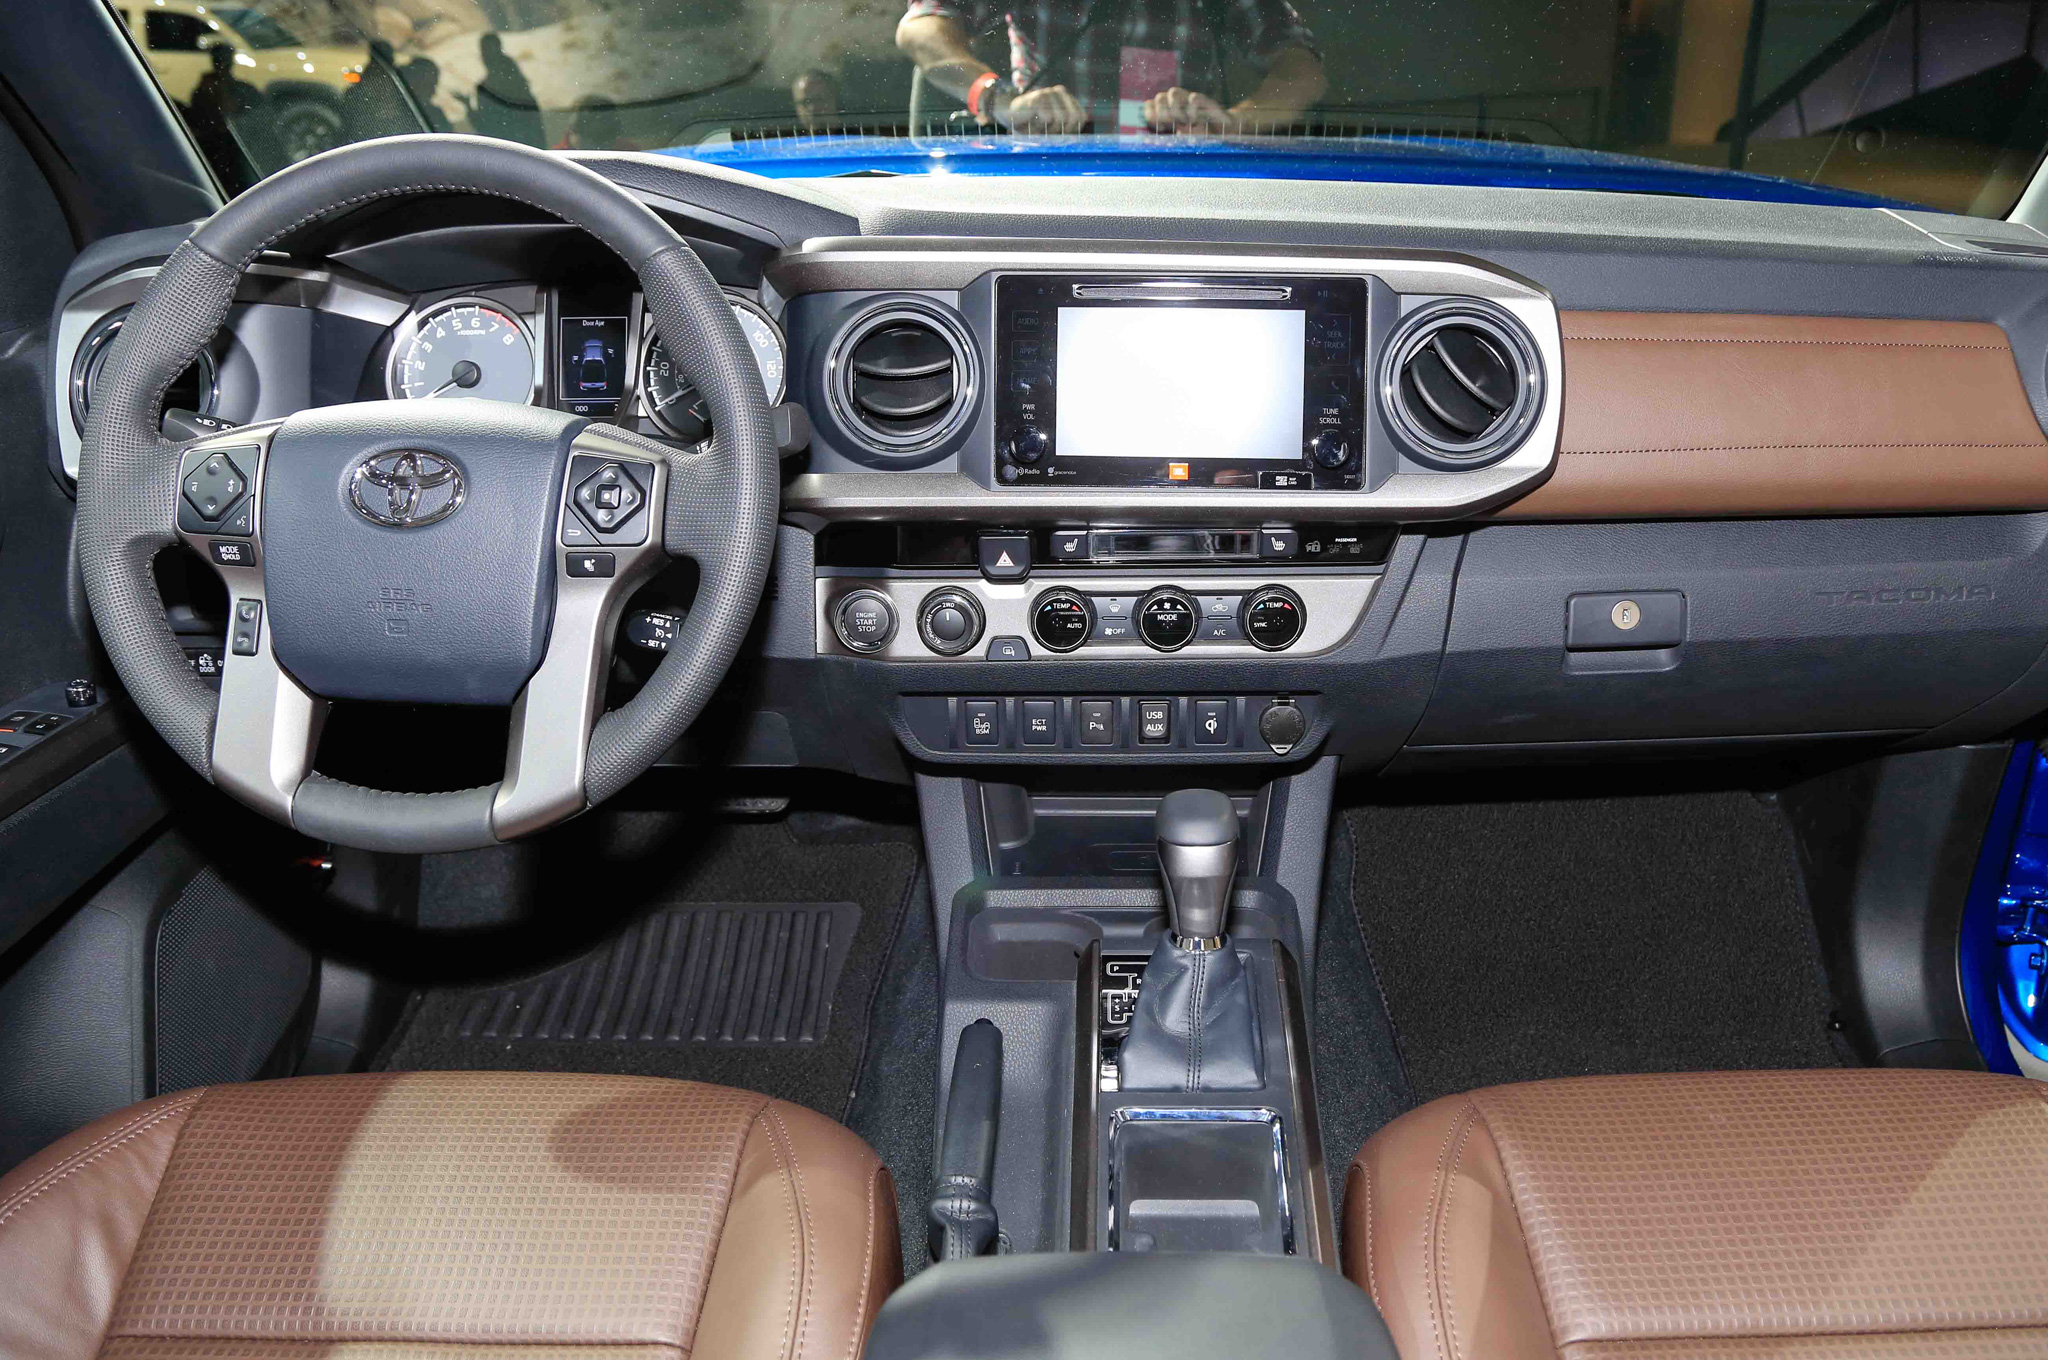 2016 Toyota Tacoma Interior Dashboard